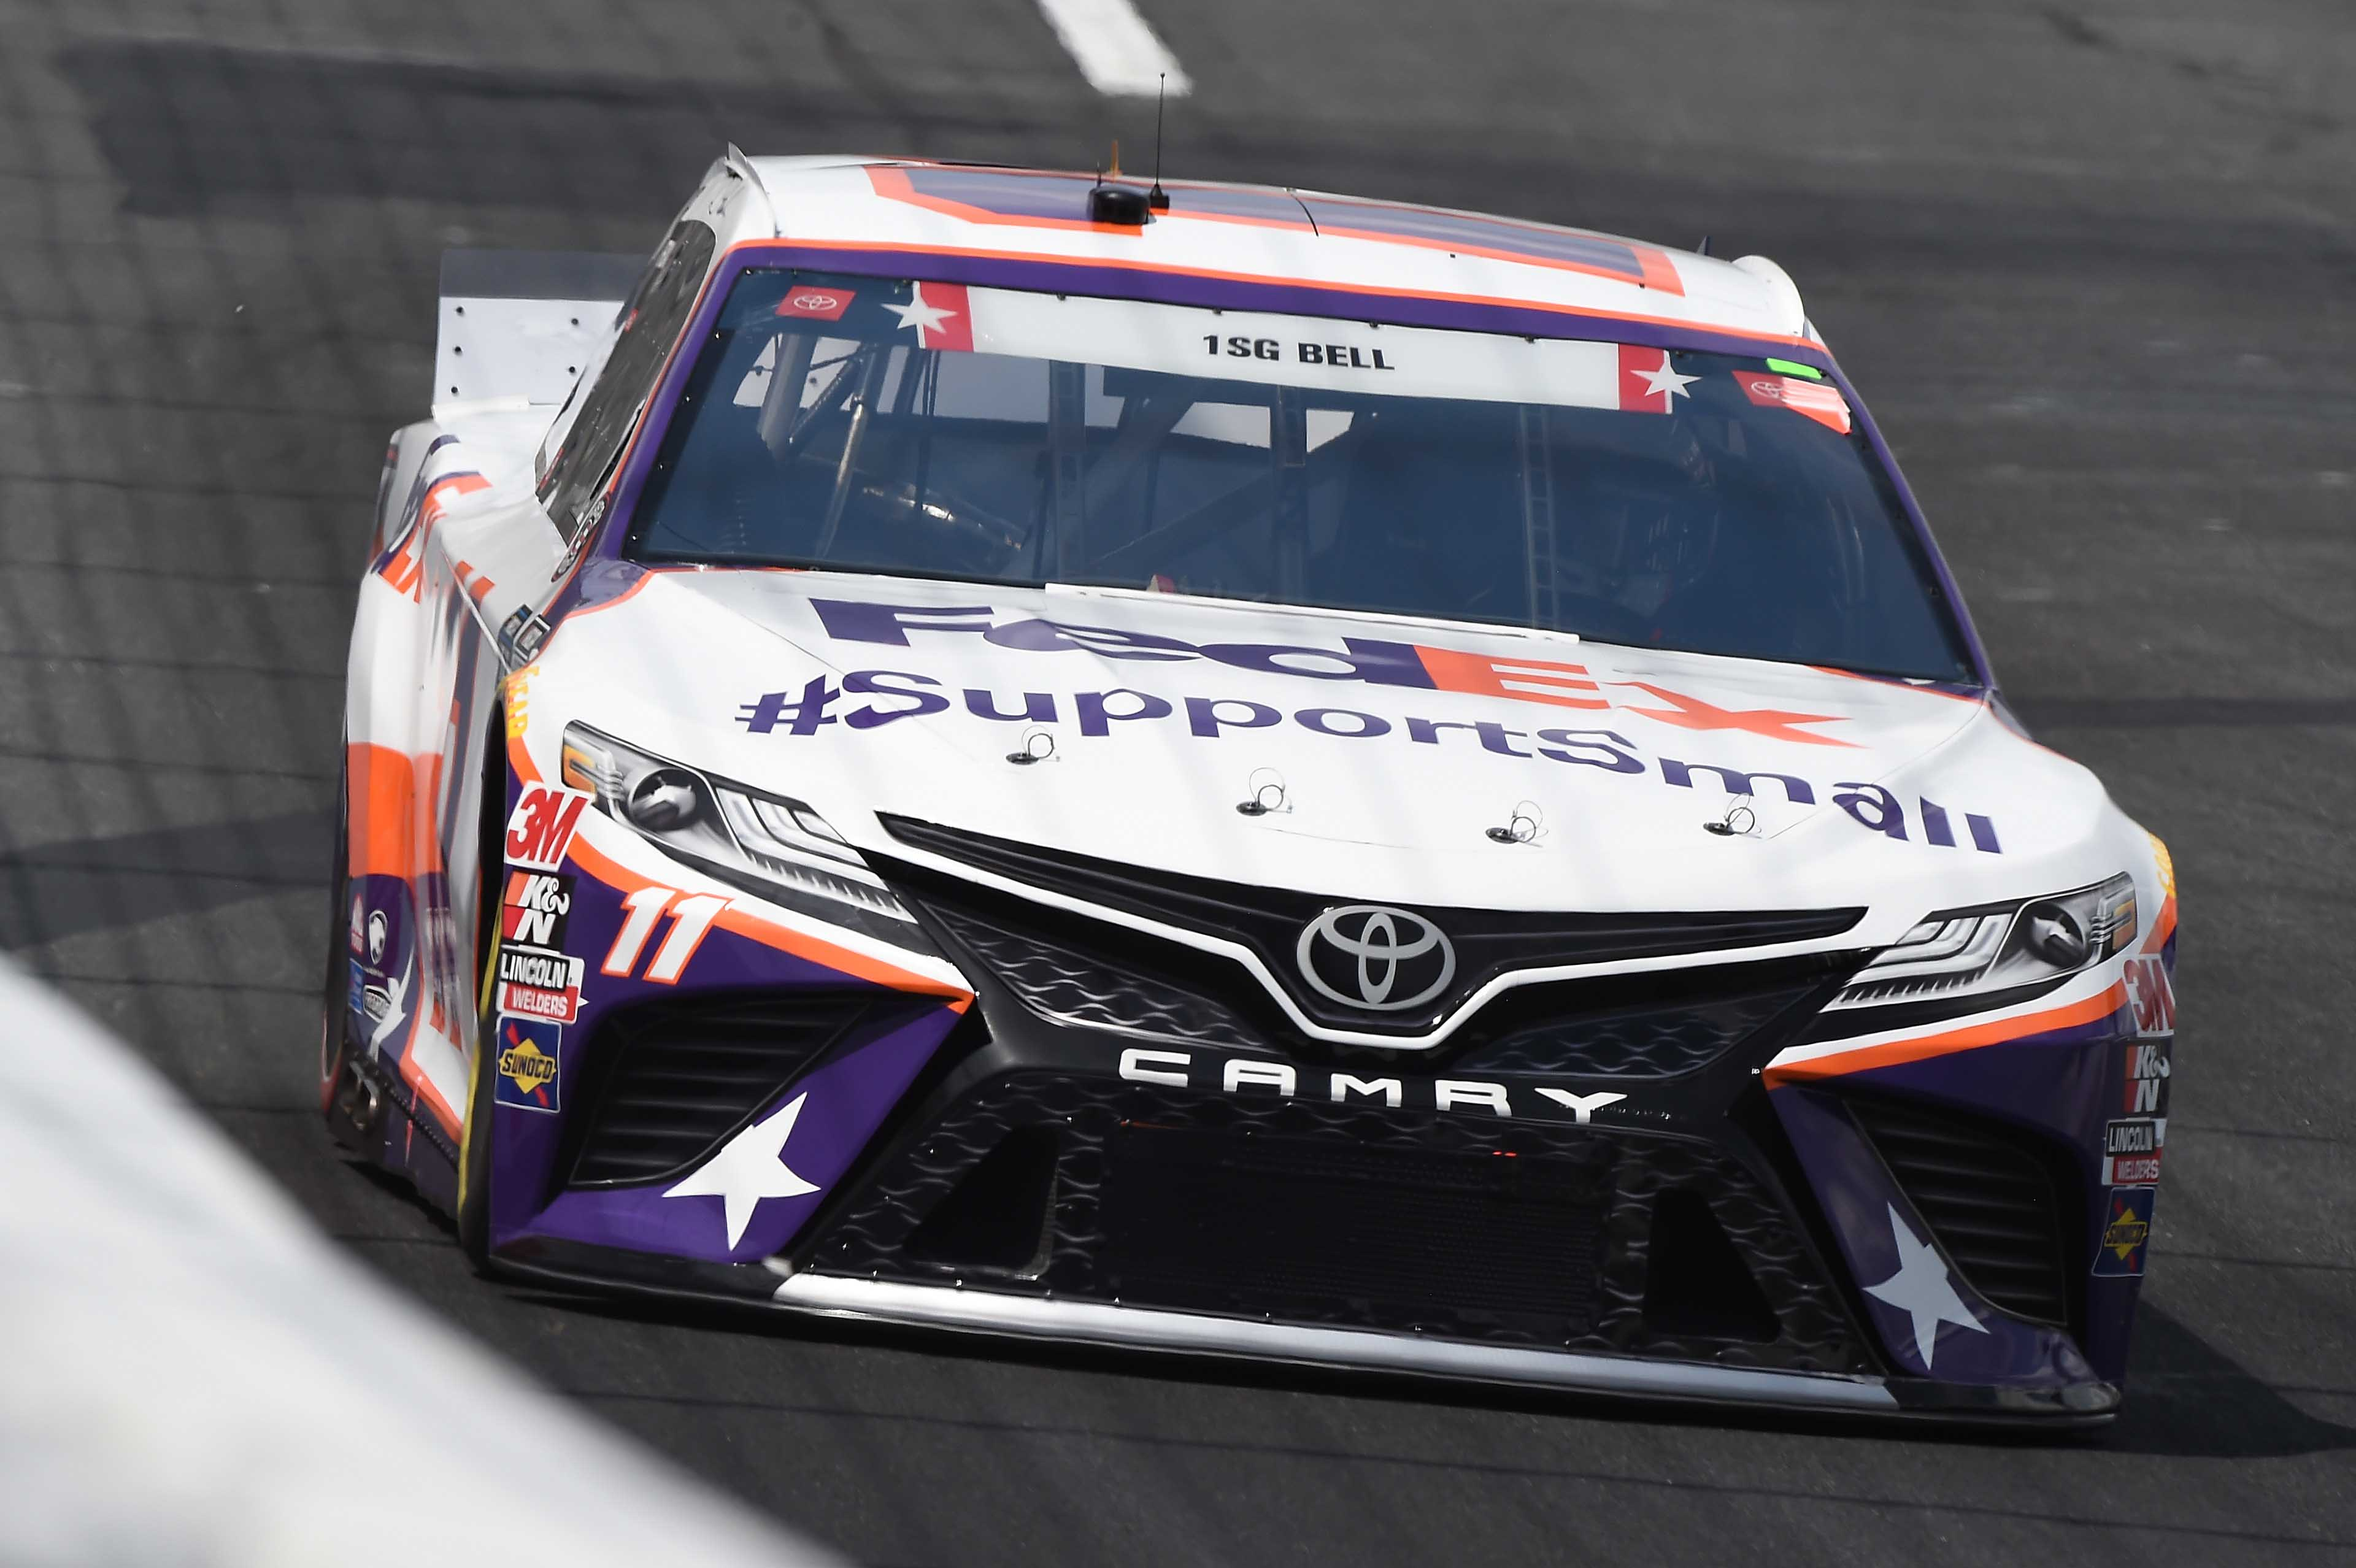 Denny Hamlin drops tungsten weight on track at Charlotte; NASCAR suspension likely (VIDEO) - Racing News